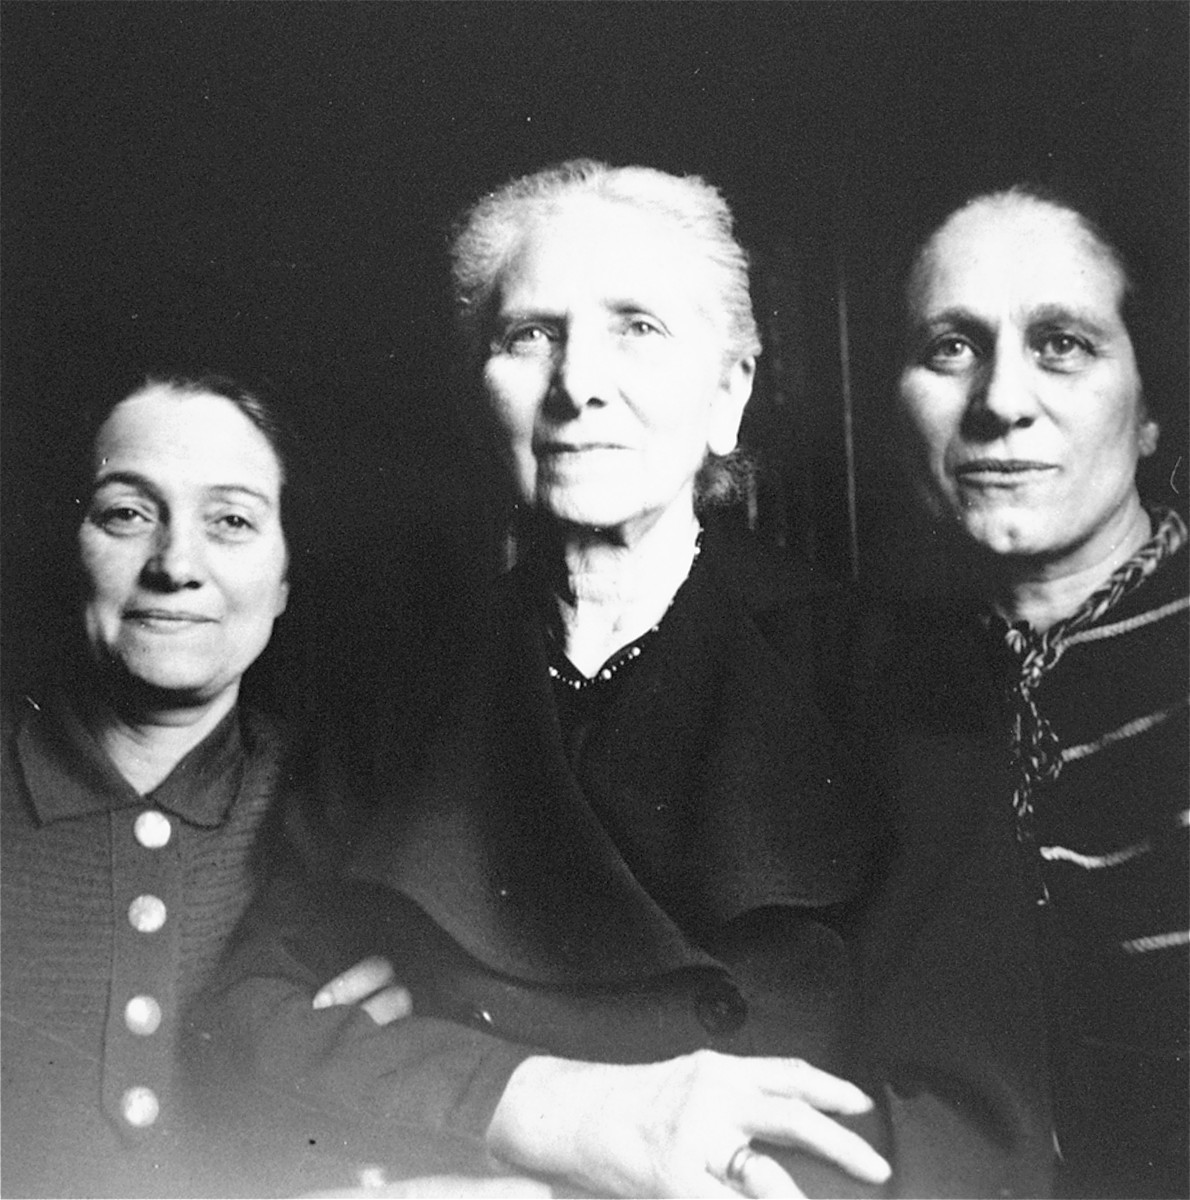 Bertha (Wolffberg) Gottschalk (center) poses with her two daughters, Nanny Lewin (left) and Kaethe Knipfer (right) in Berlin.    Bertha and Nanny were deported to Theresienstadt in 1942, and Kaethe in 1944. Only Kaethe survived.